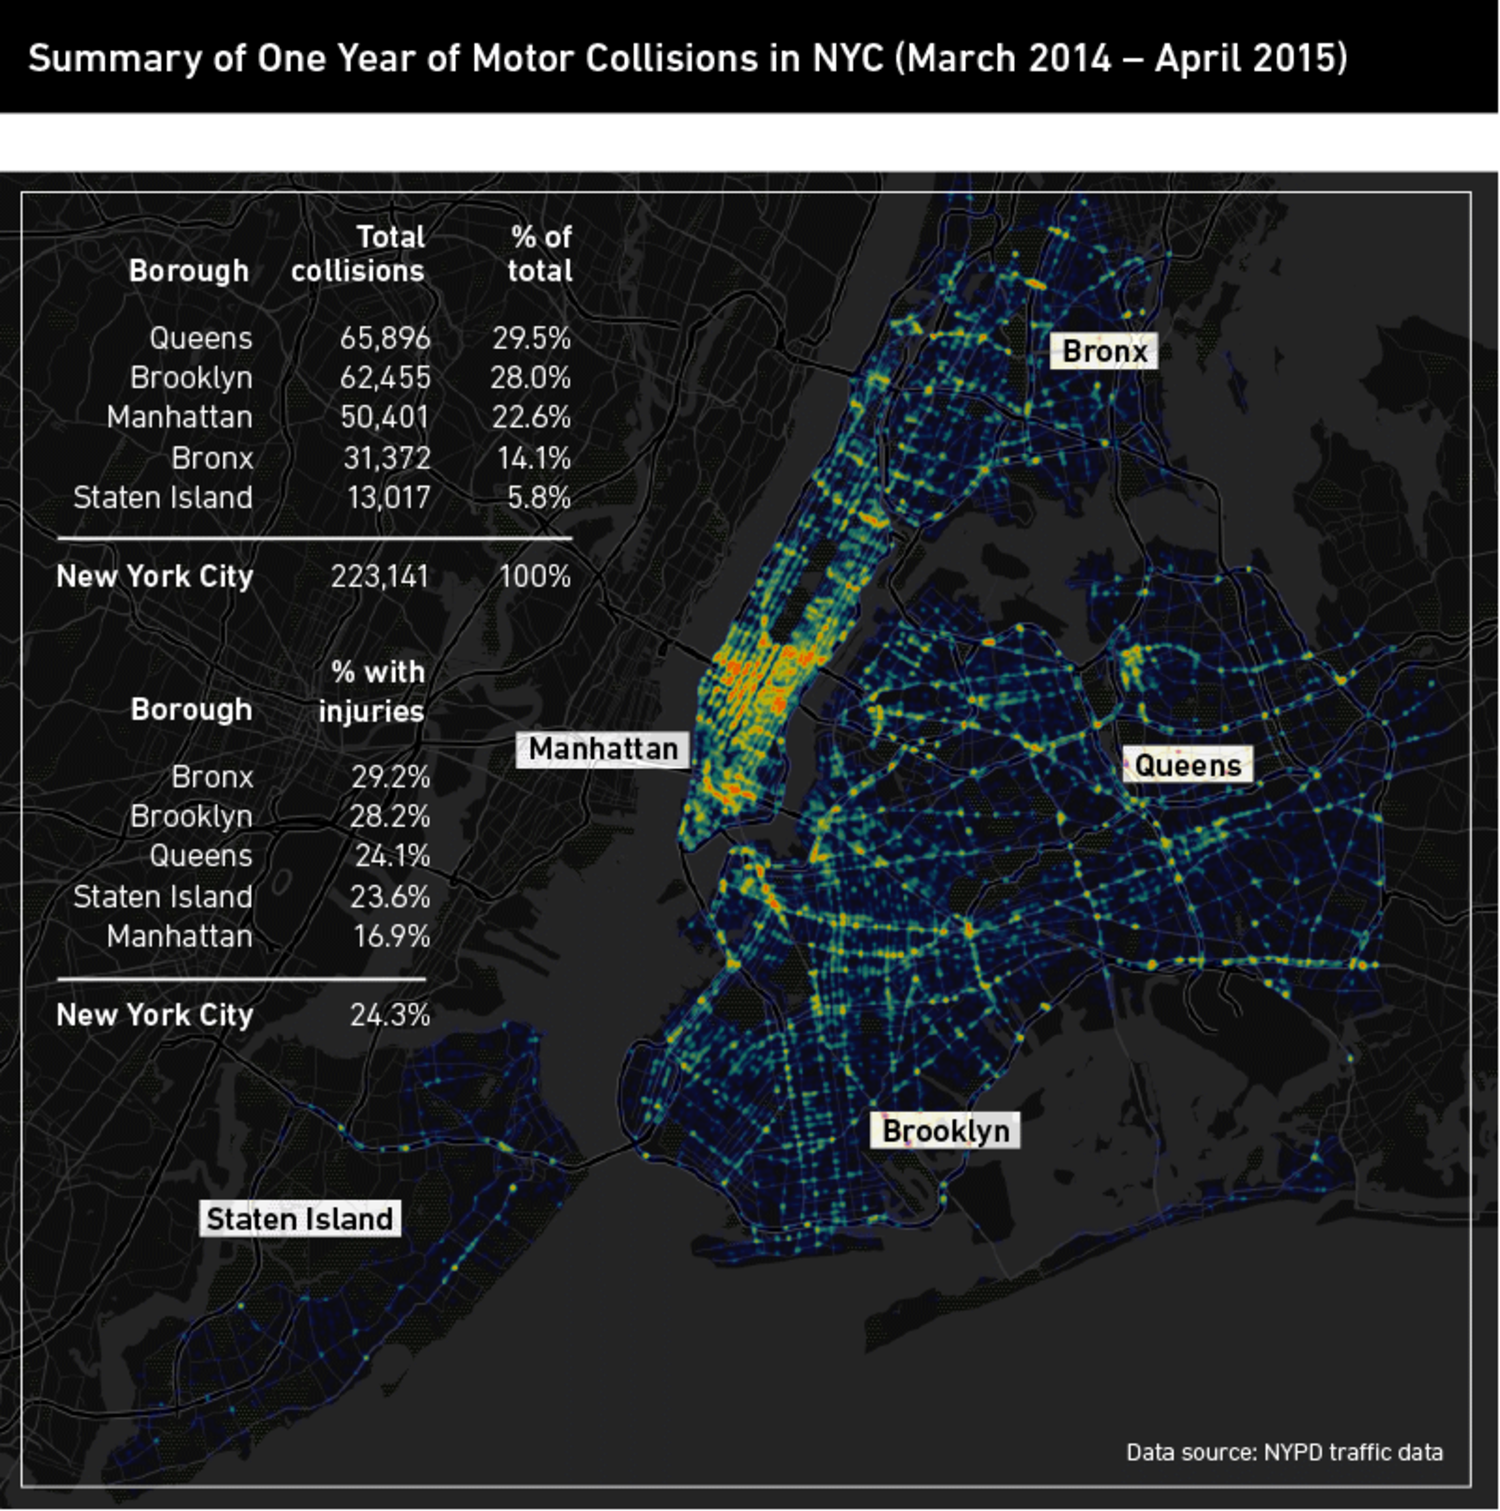 Summary of One Year of Motor Collisions in NYC (March 2014 - April 2015)